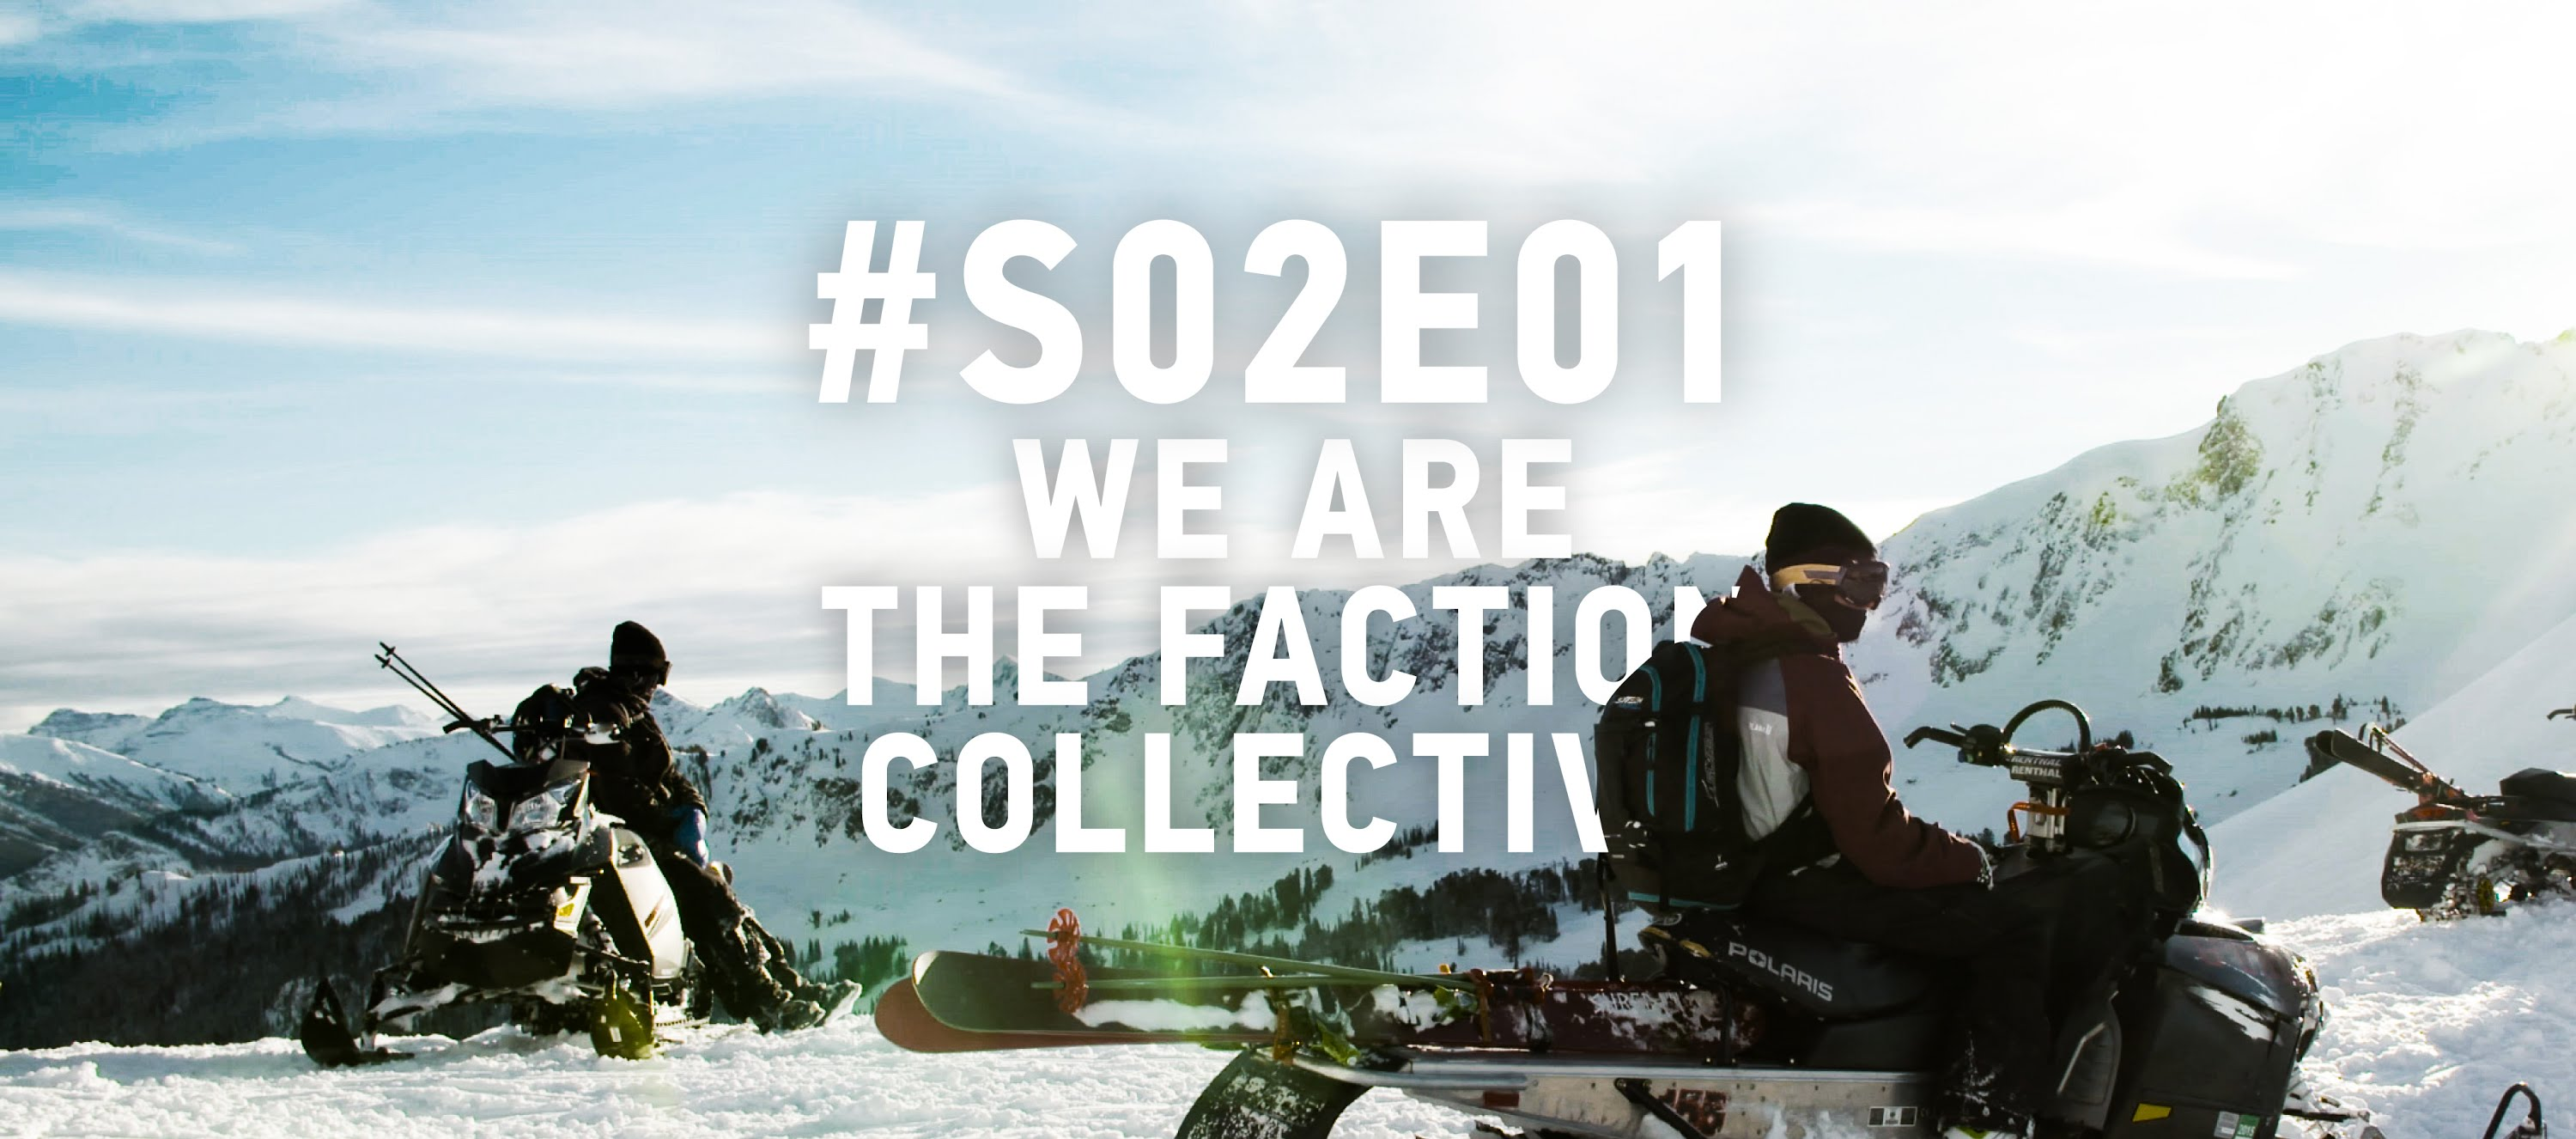 WE ARE THE FACTION COLLECTIVE S02E01